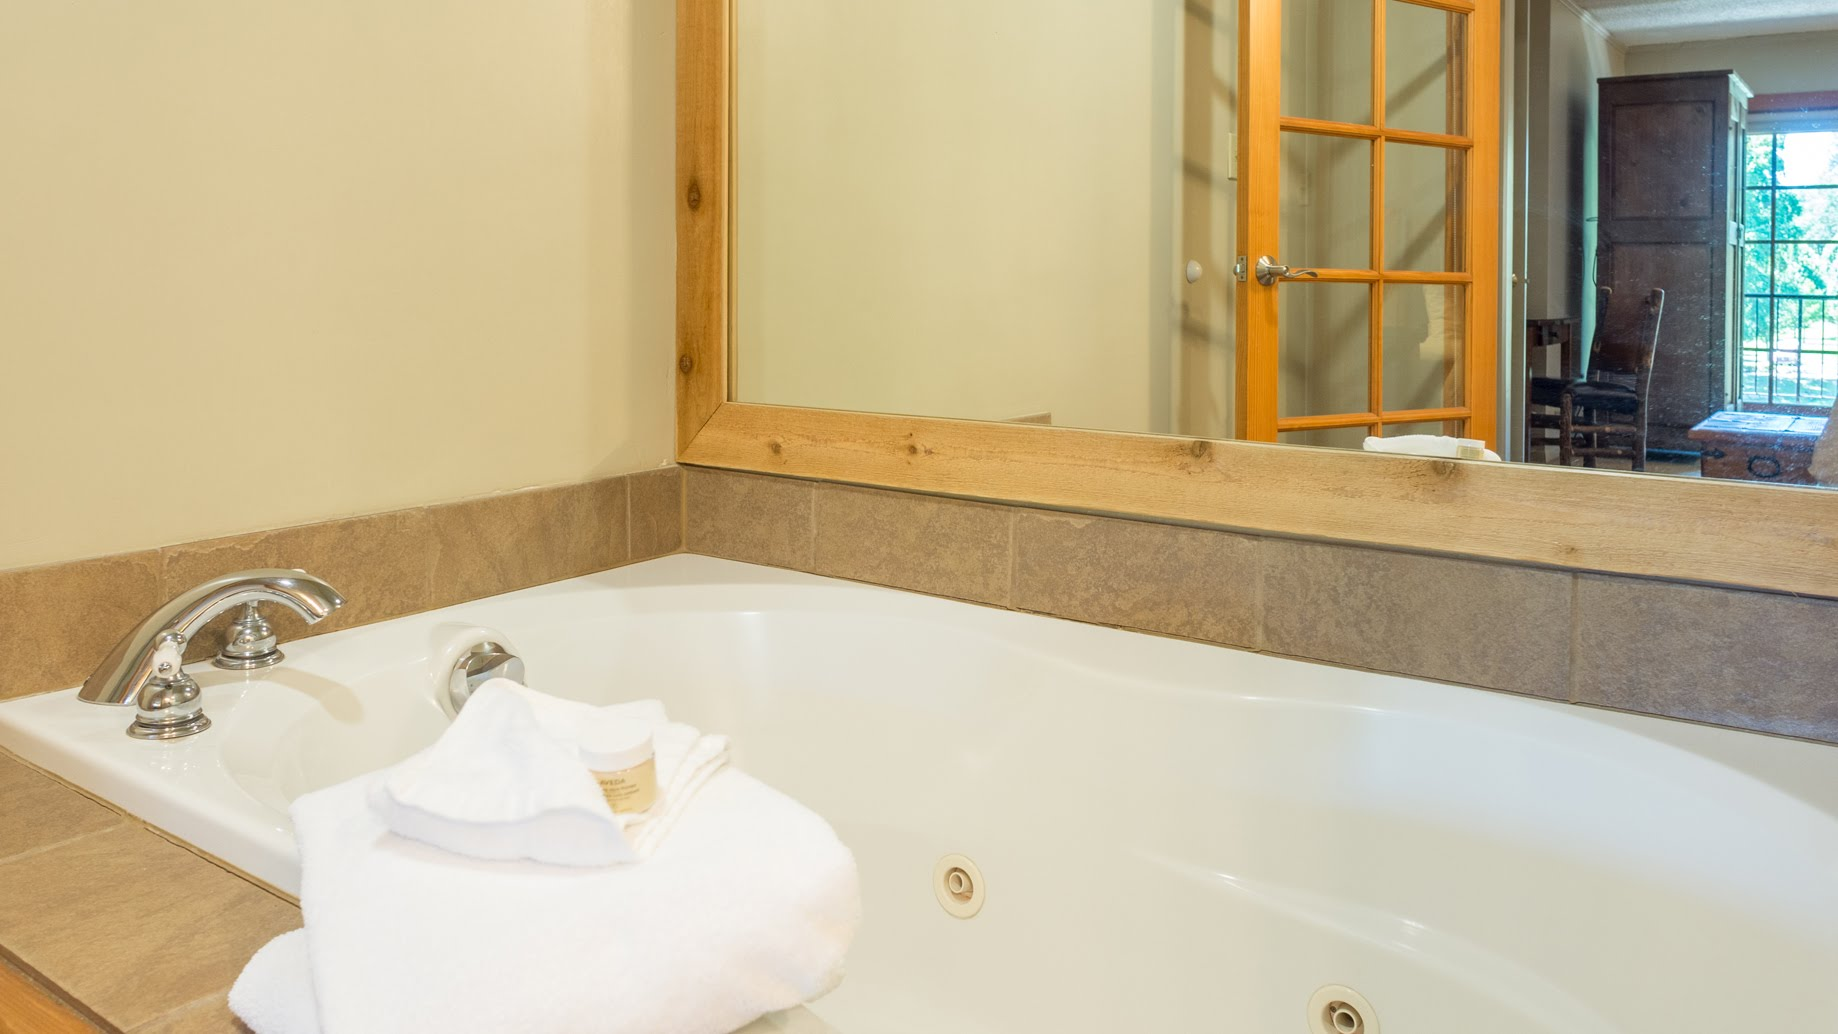 The Master Suite has an oversized whirlpool soaking tub